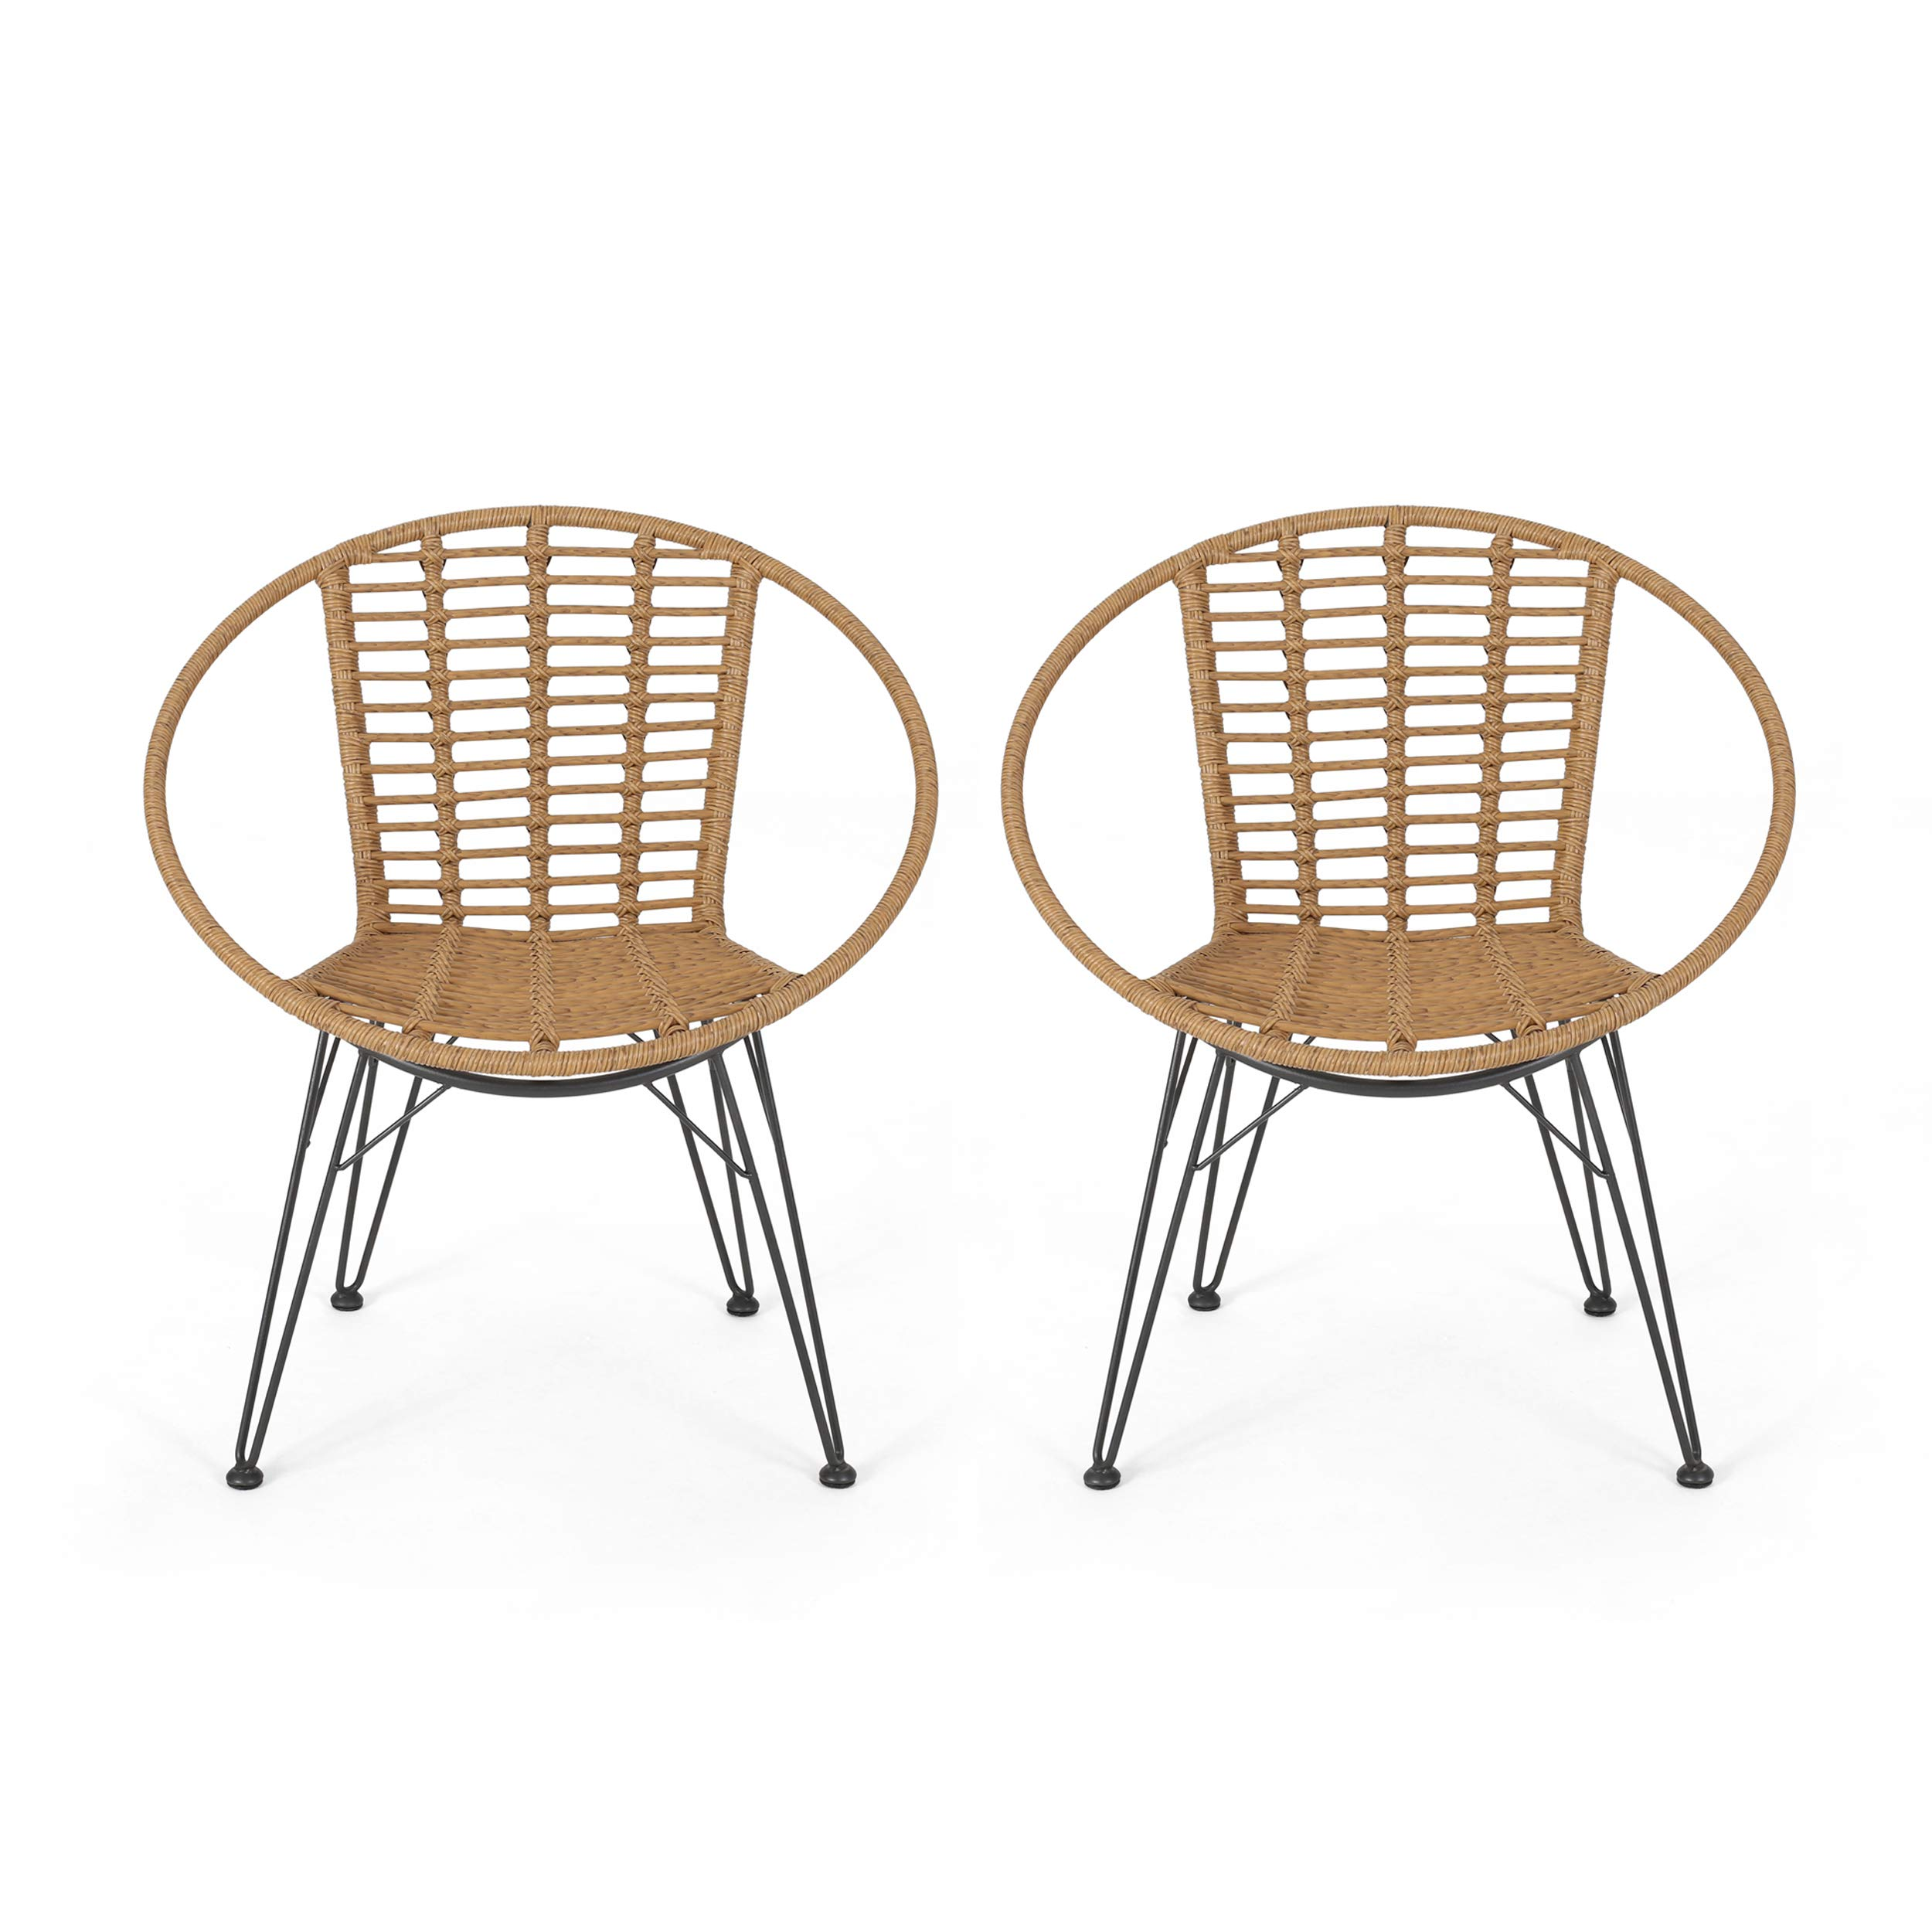 Great Deal Furniture Winnie Outdoor Wicker Dining Chairs (Set of 2), Light Brown and Black by Great Deal Furniture